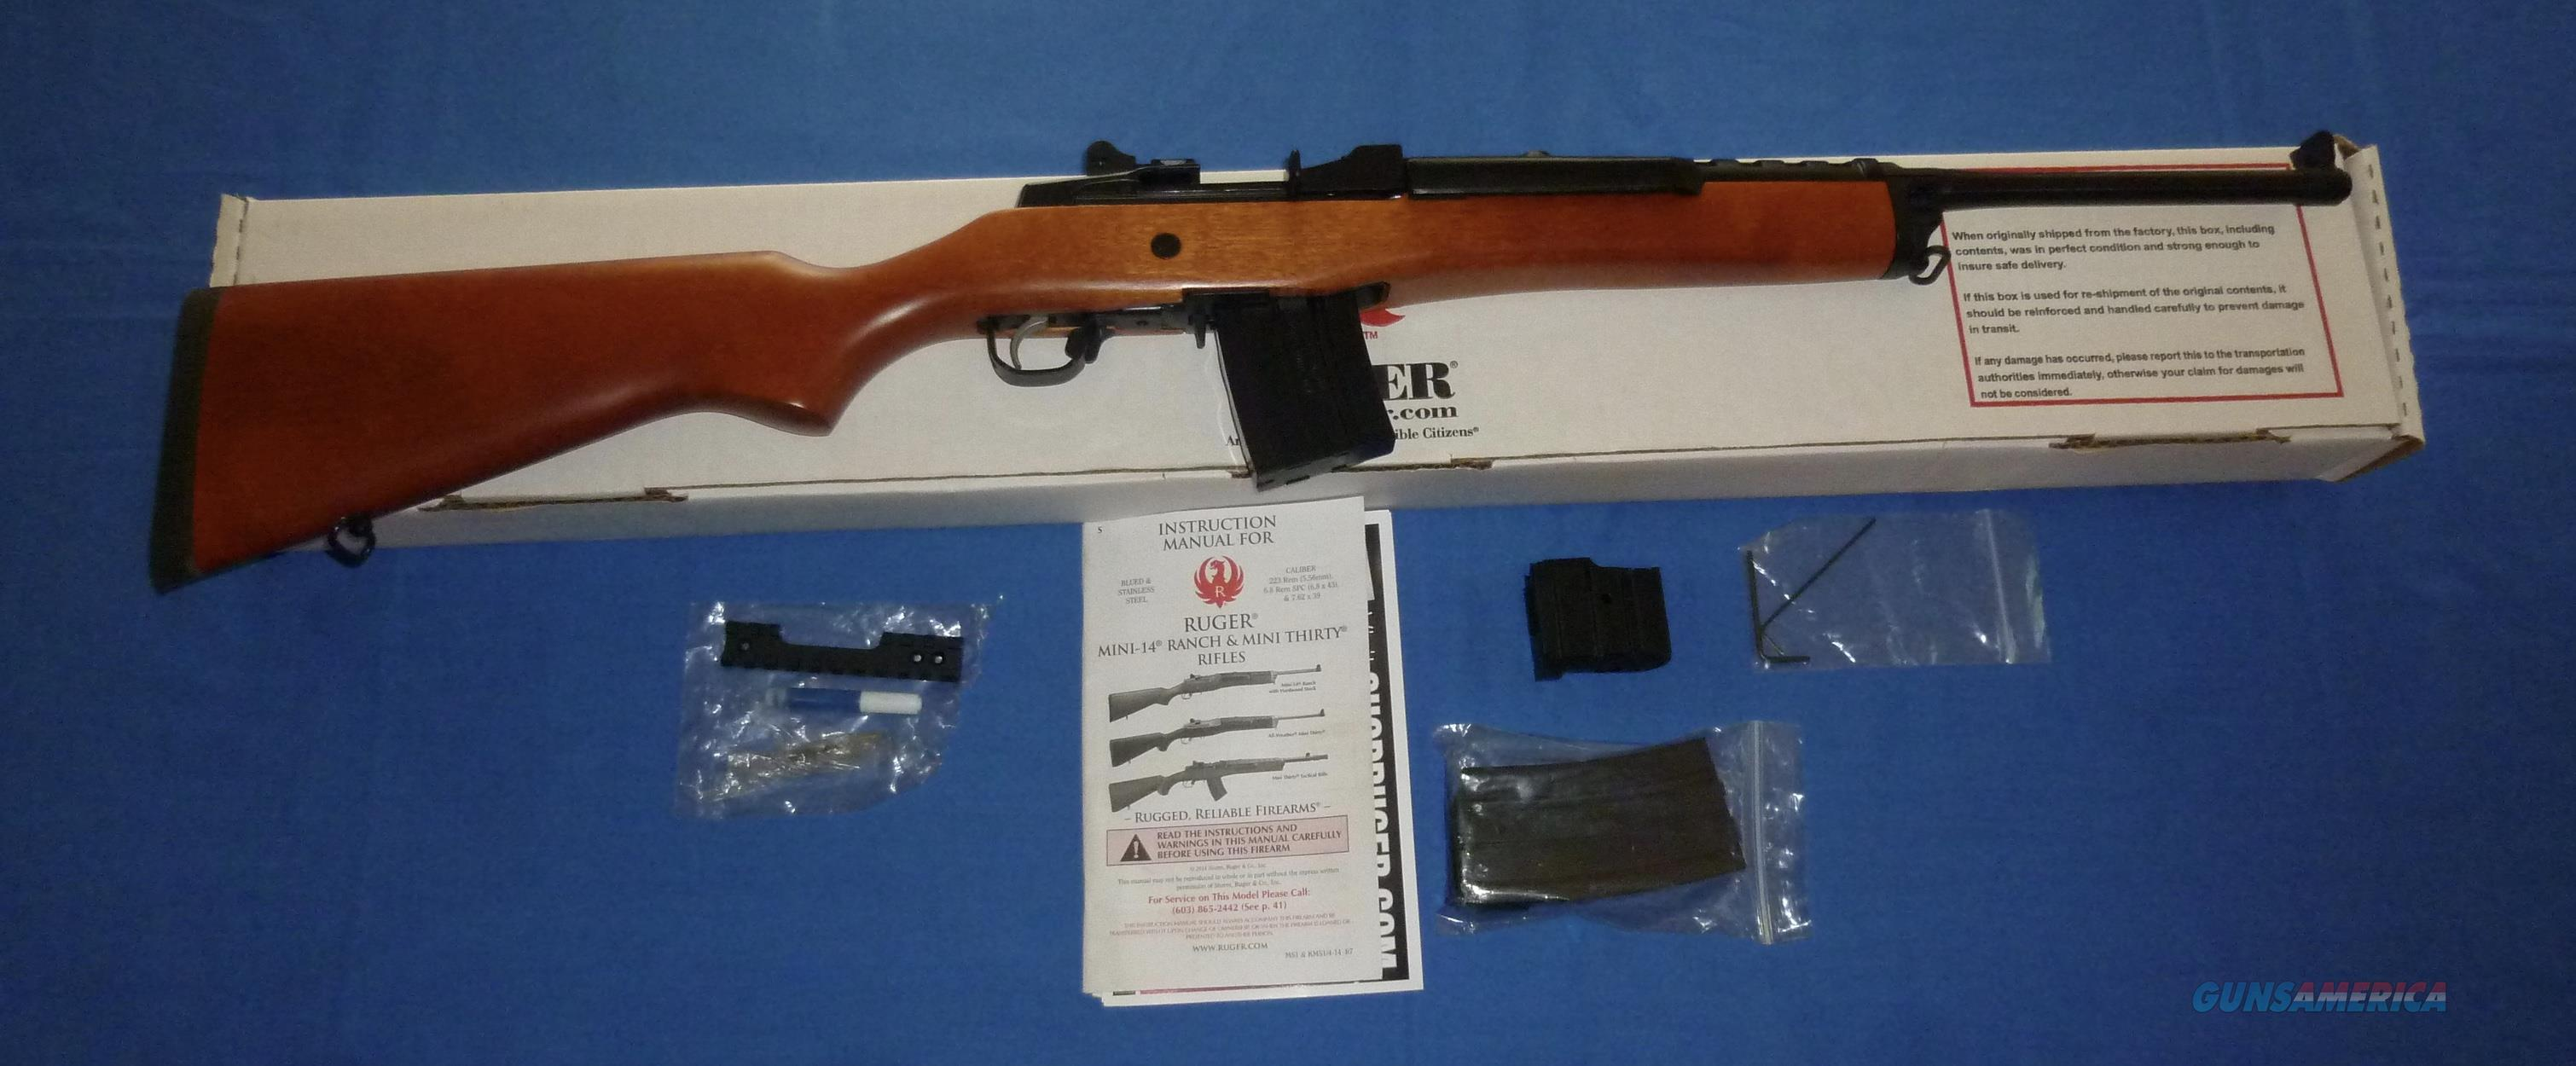 RUGER MINI-14 RANCH RIFLE .223 CALIBER  Guns > Rifles > Ruger Rifles > Mini-14 Type